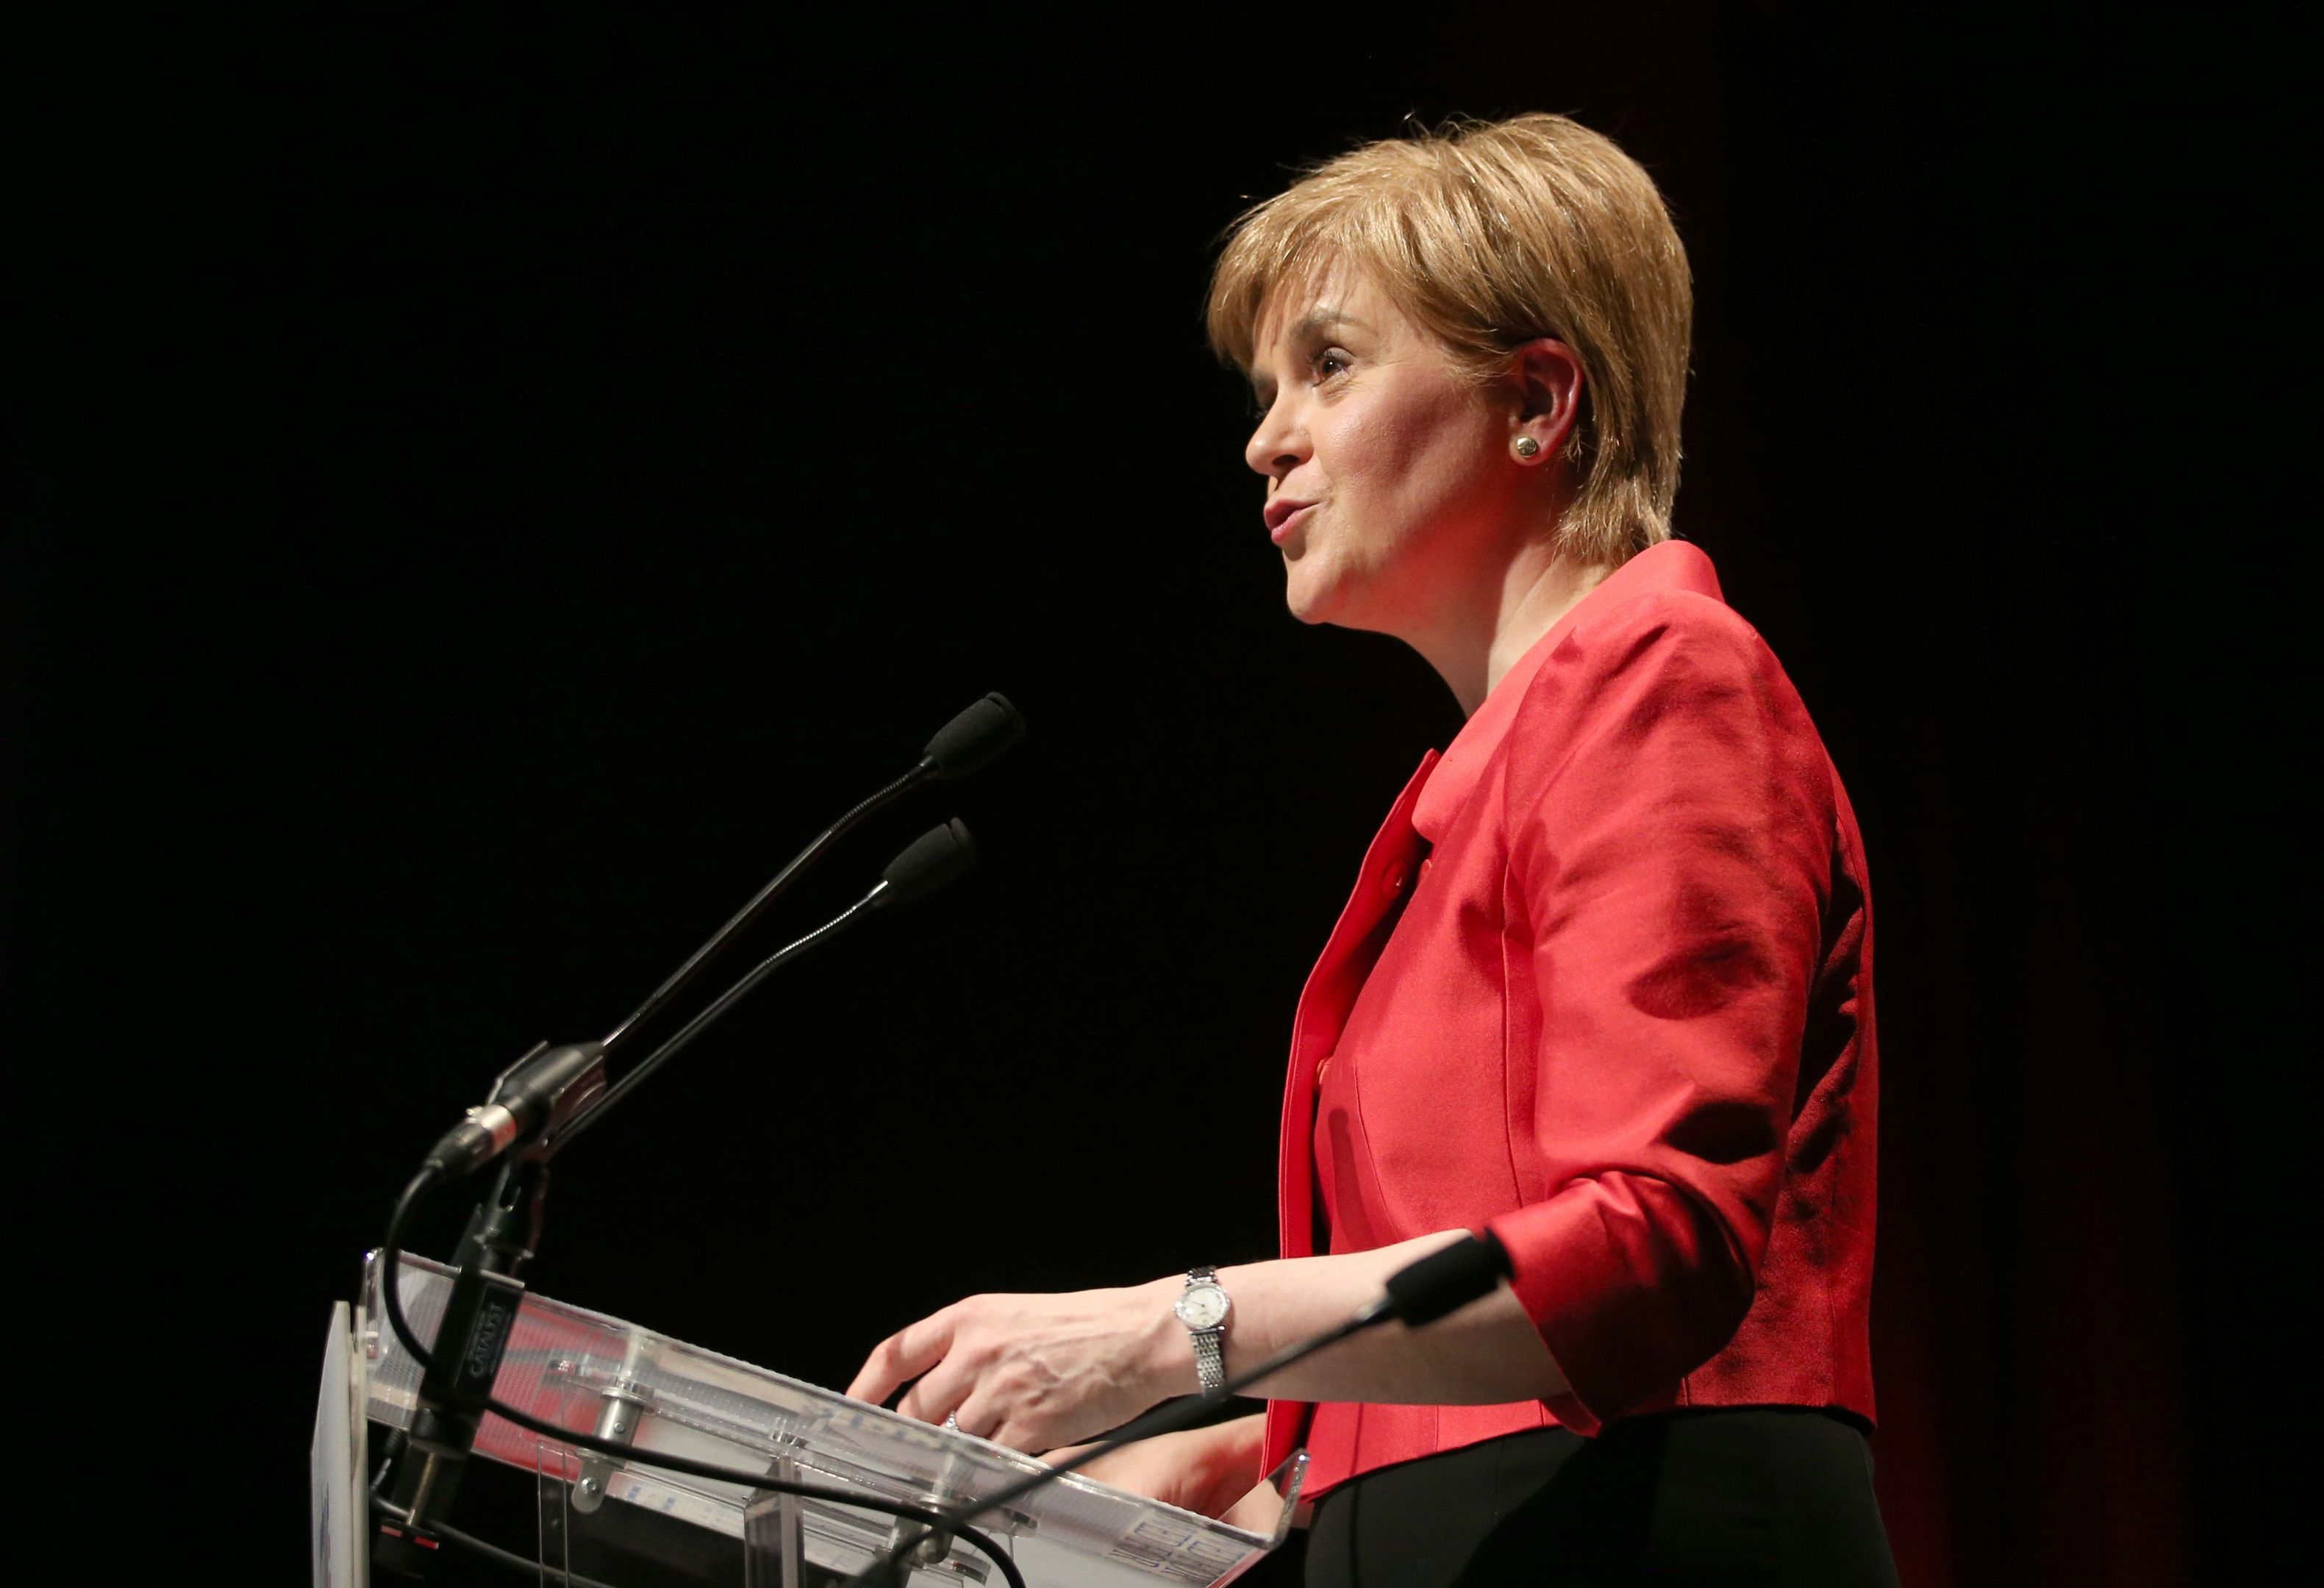 SNP leader Nicola Sturgeon speaks at the STUC conference in Aviemore. (Jane Barlow/PA Wire)